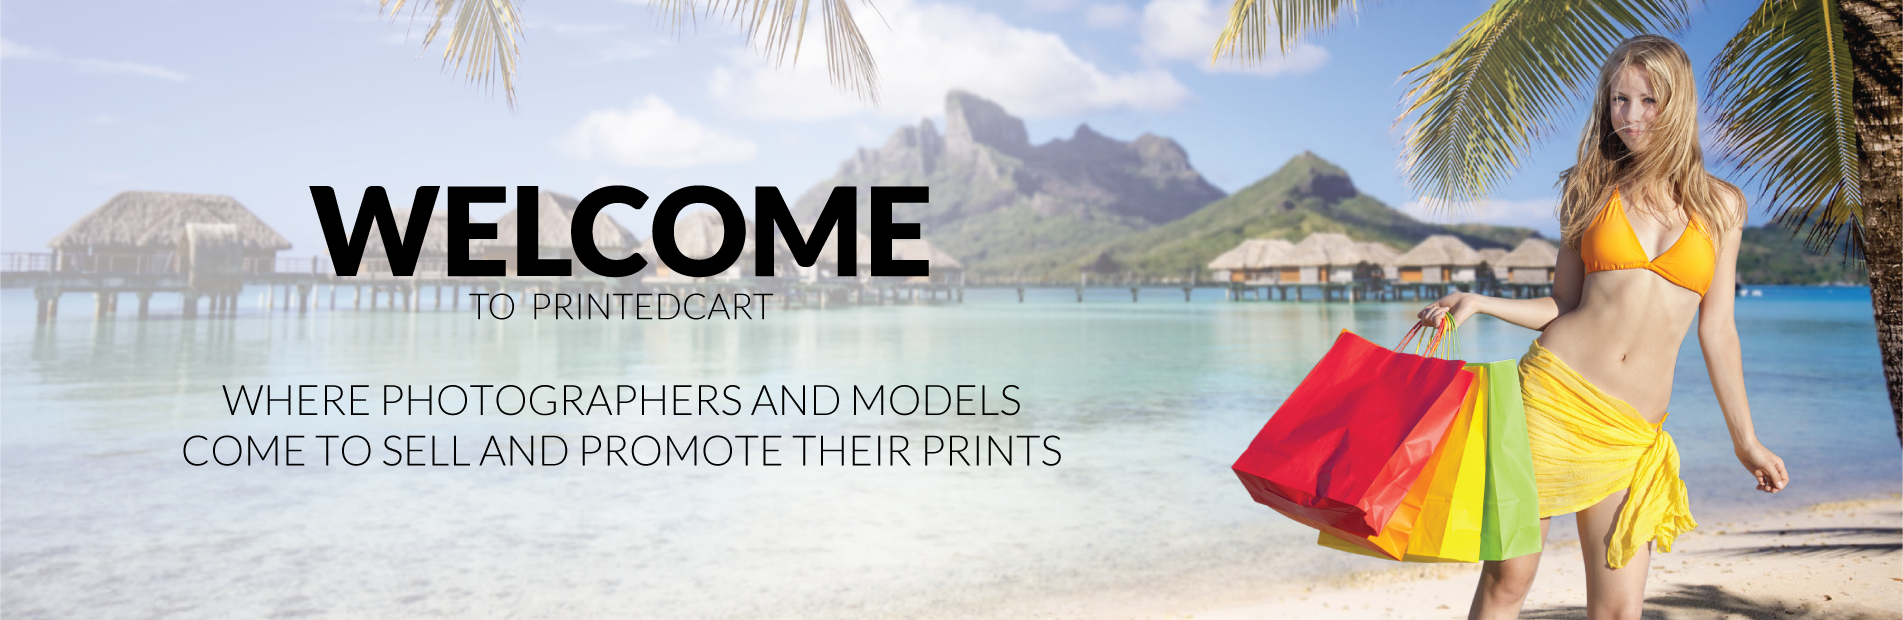 Welcome to Pritnedcart. Where photographers and models come to sell and promote their prints.